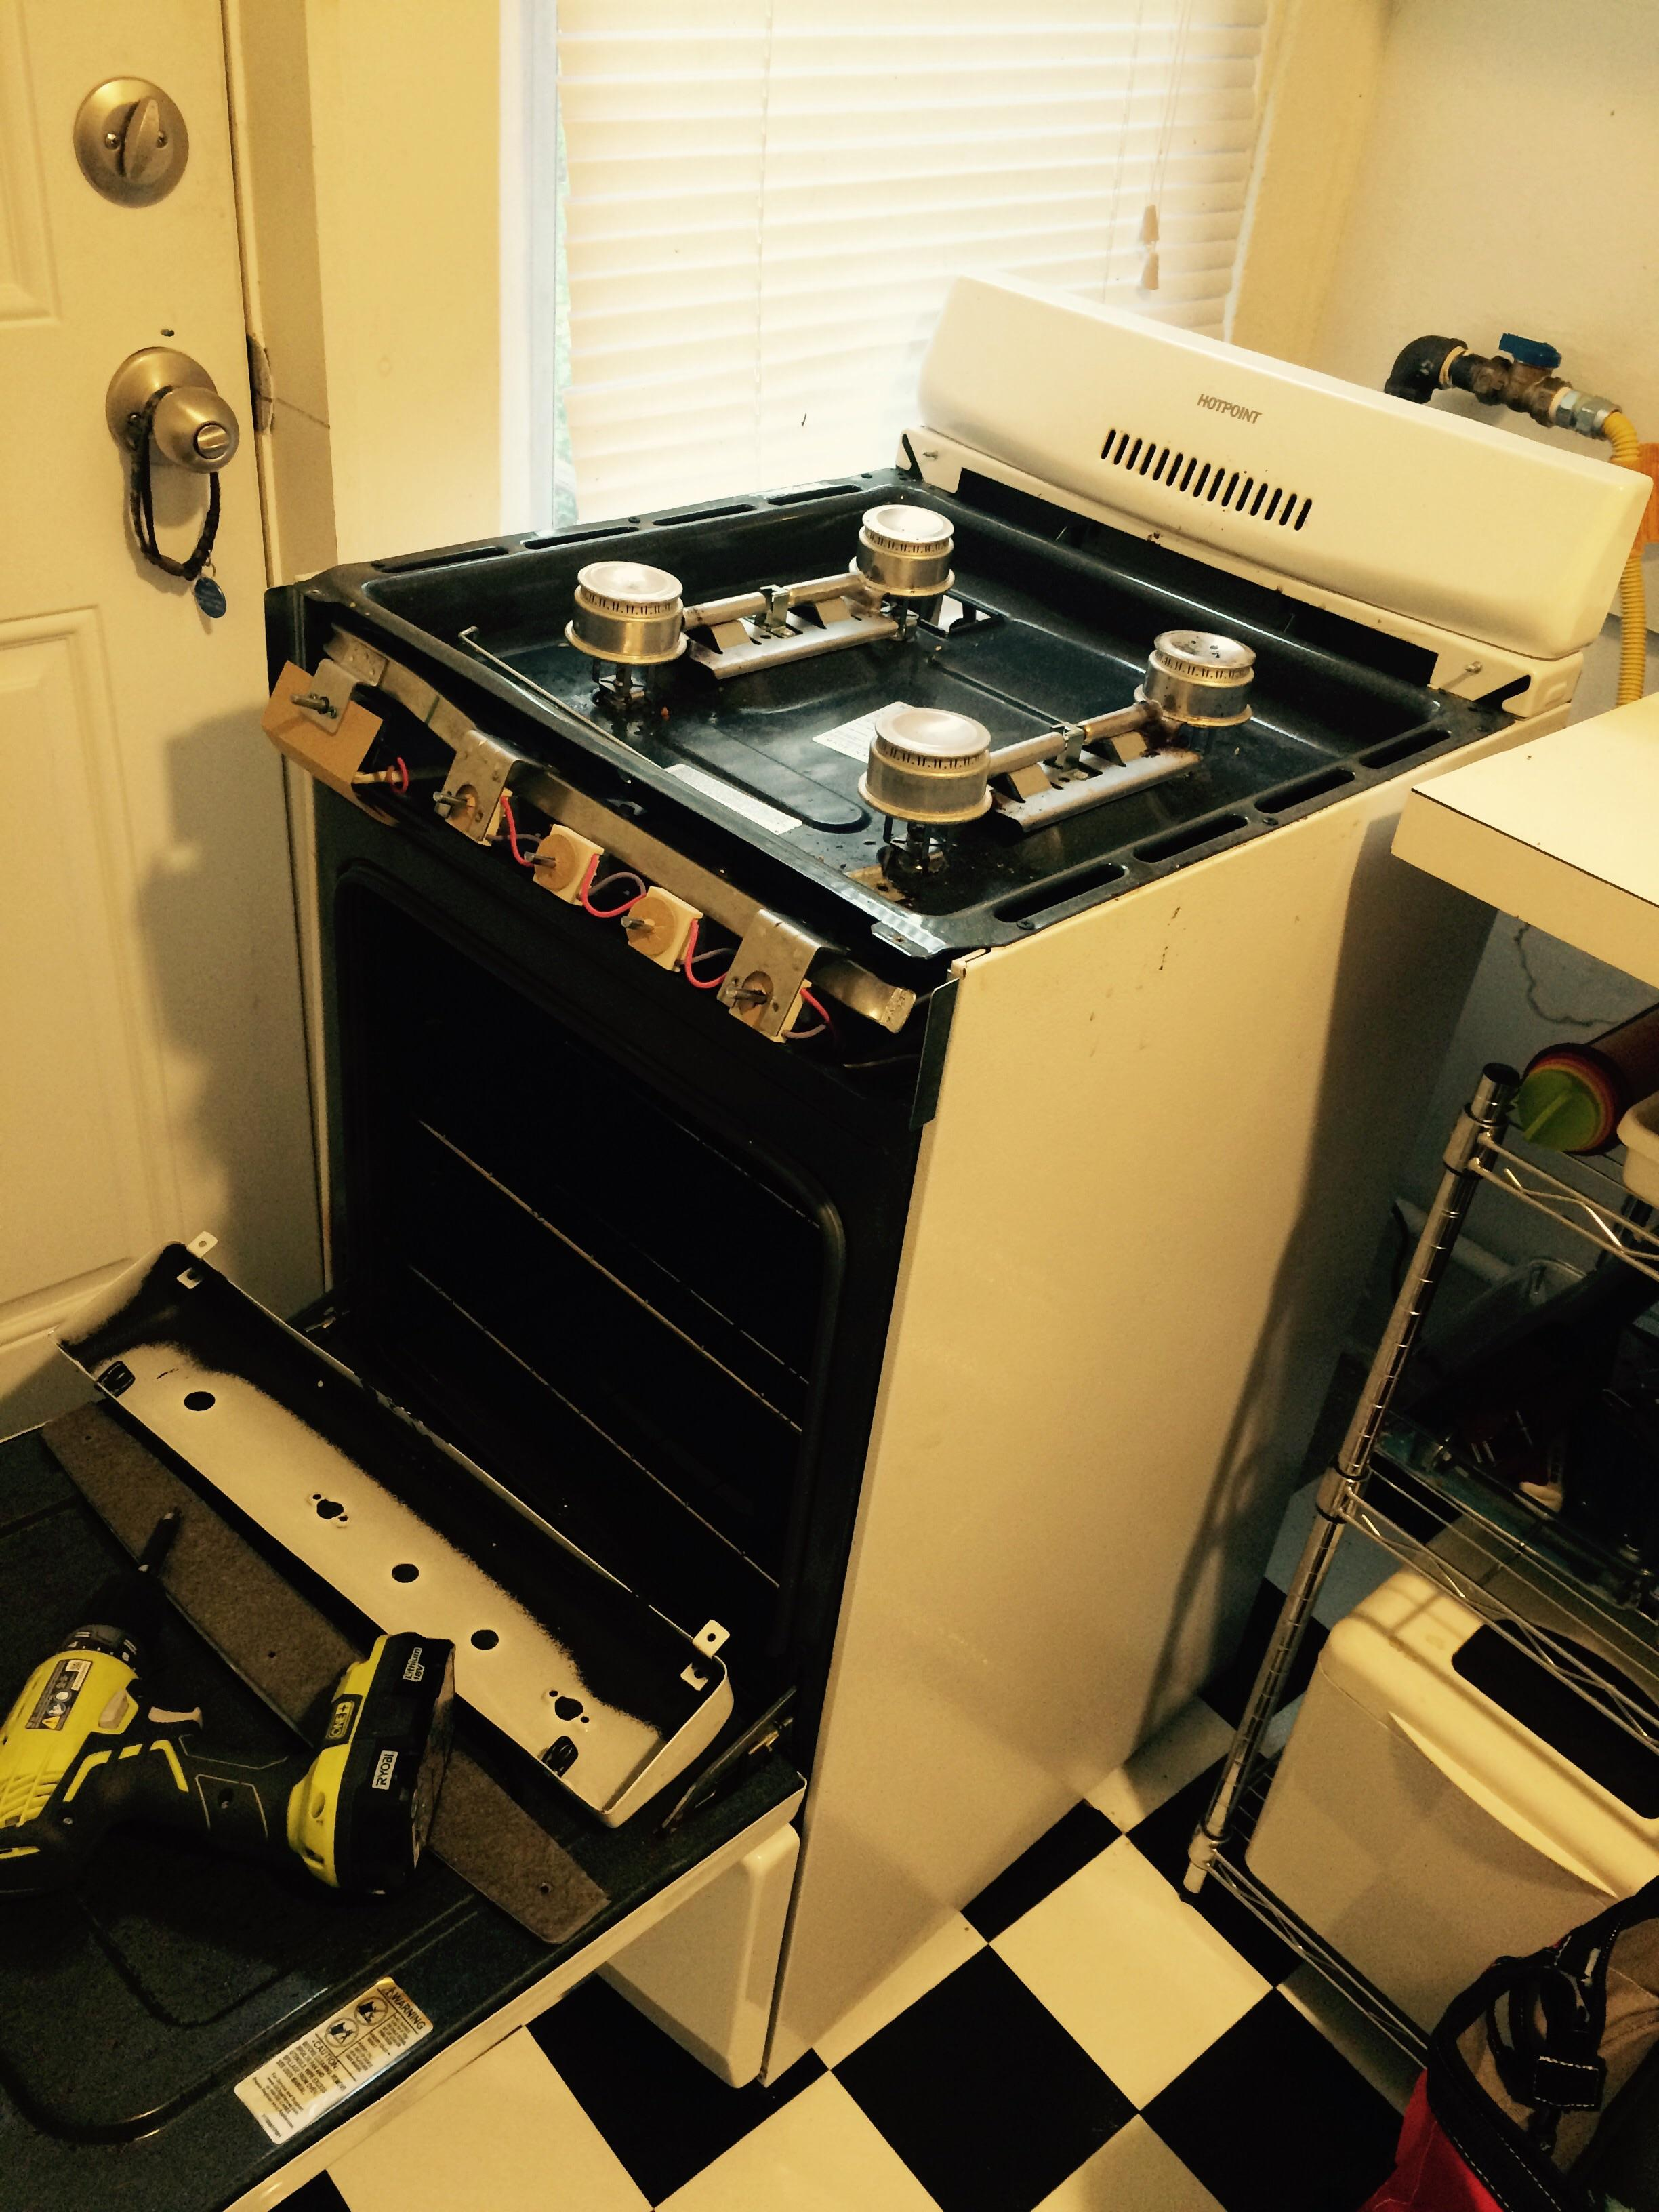 Global Solutions Appliance Repair image 40